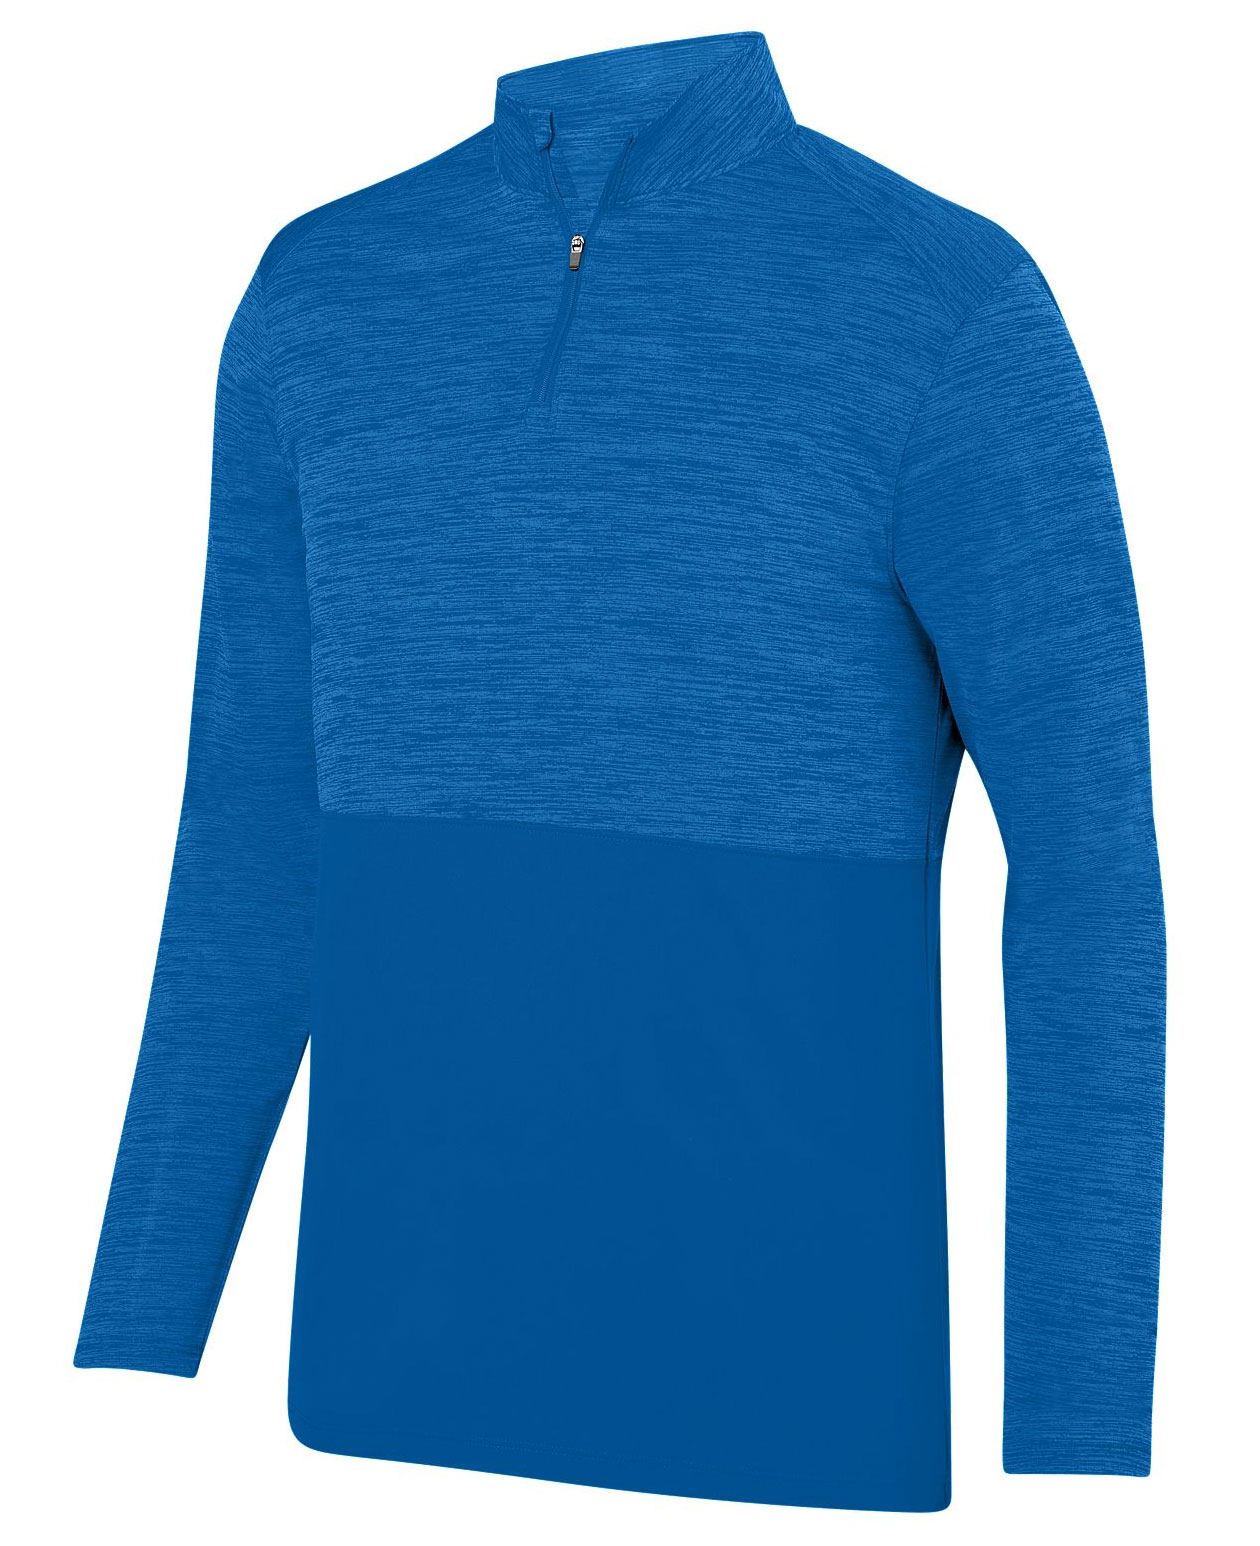 Shadow Tonal Heather Mens 1/4 Zip